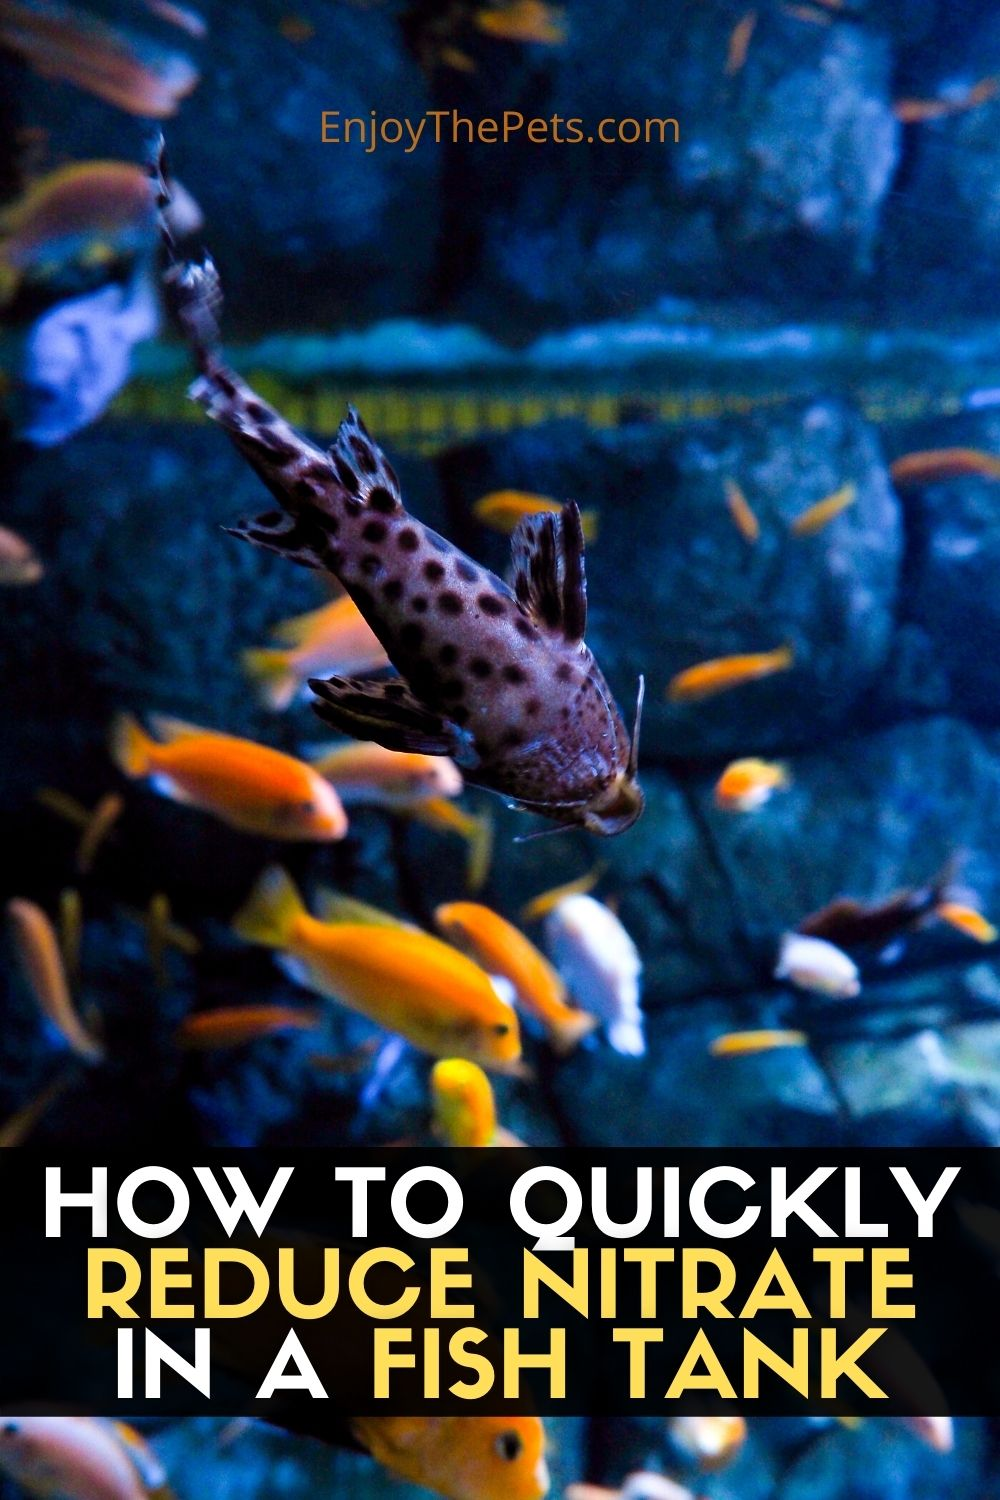 HOW TO QUICKLY REDUCE NITRATE IN A FISH TANK